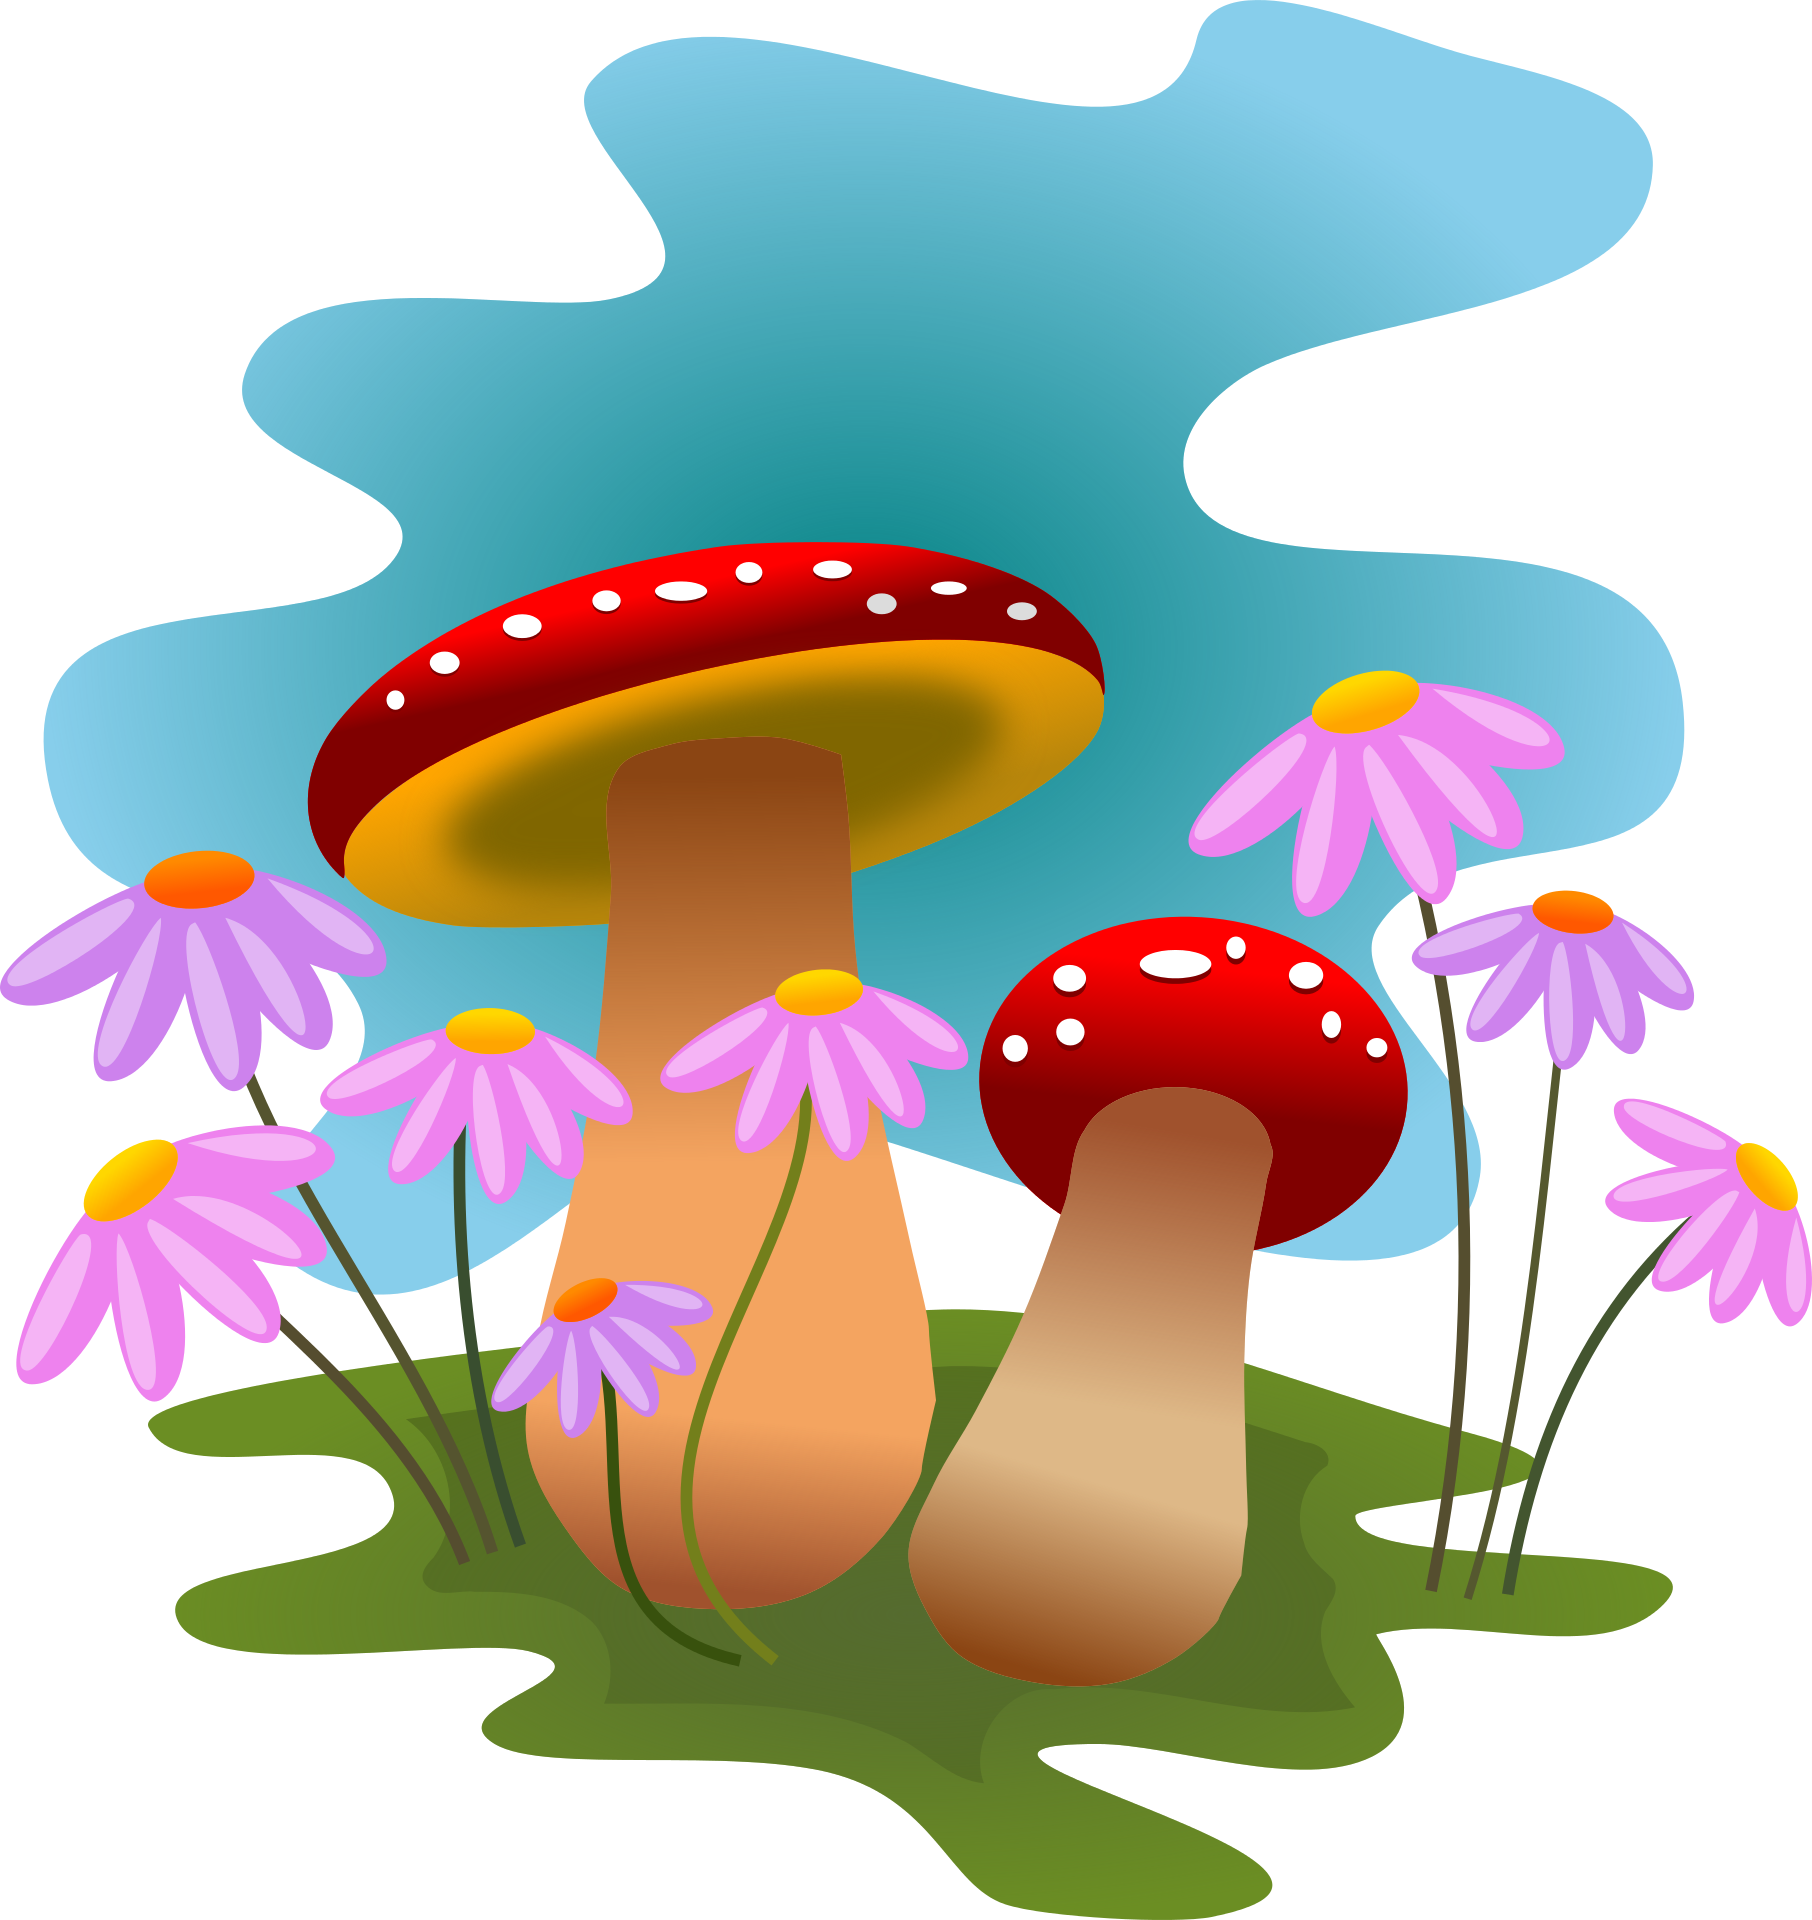 Funky mushrooms digital clipart image library Mushrooms Clipart | Free download best Mushrooms Clipart on ... image library